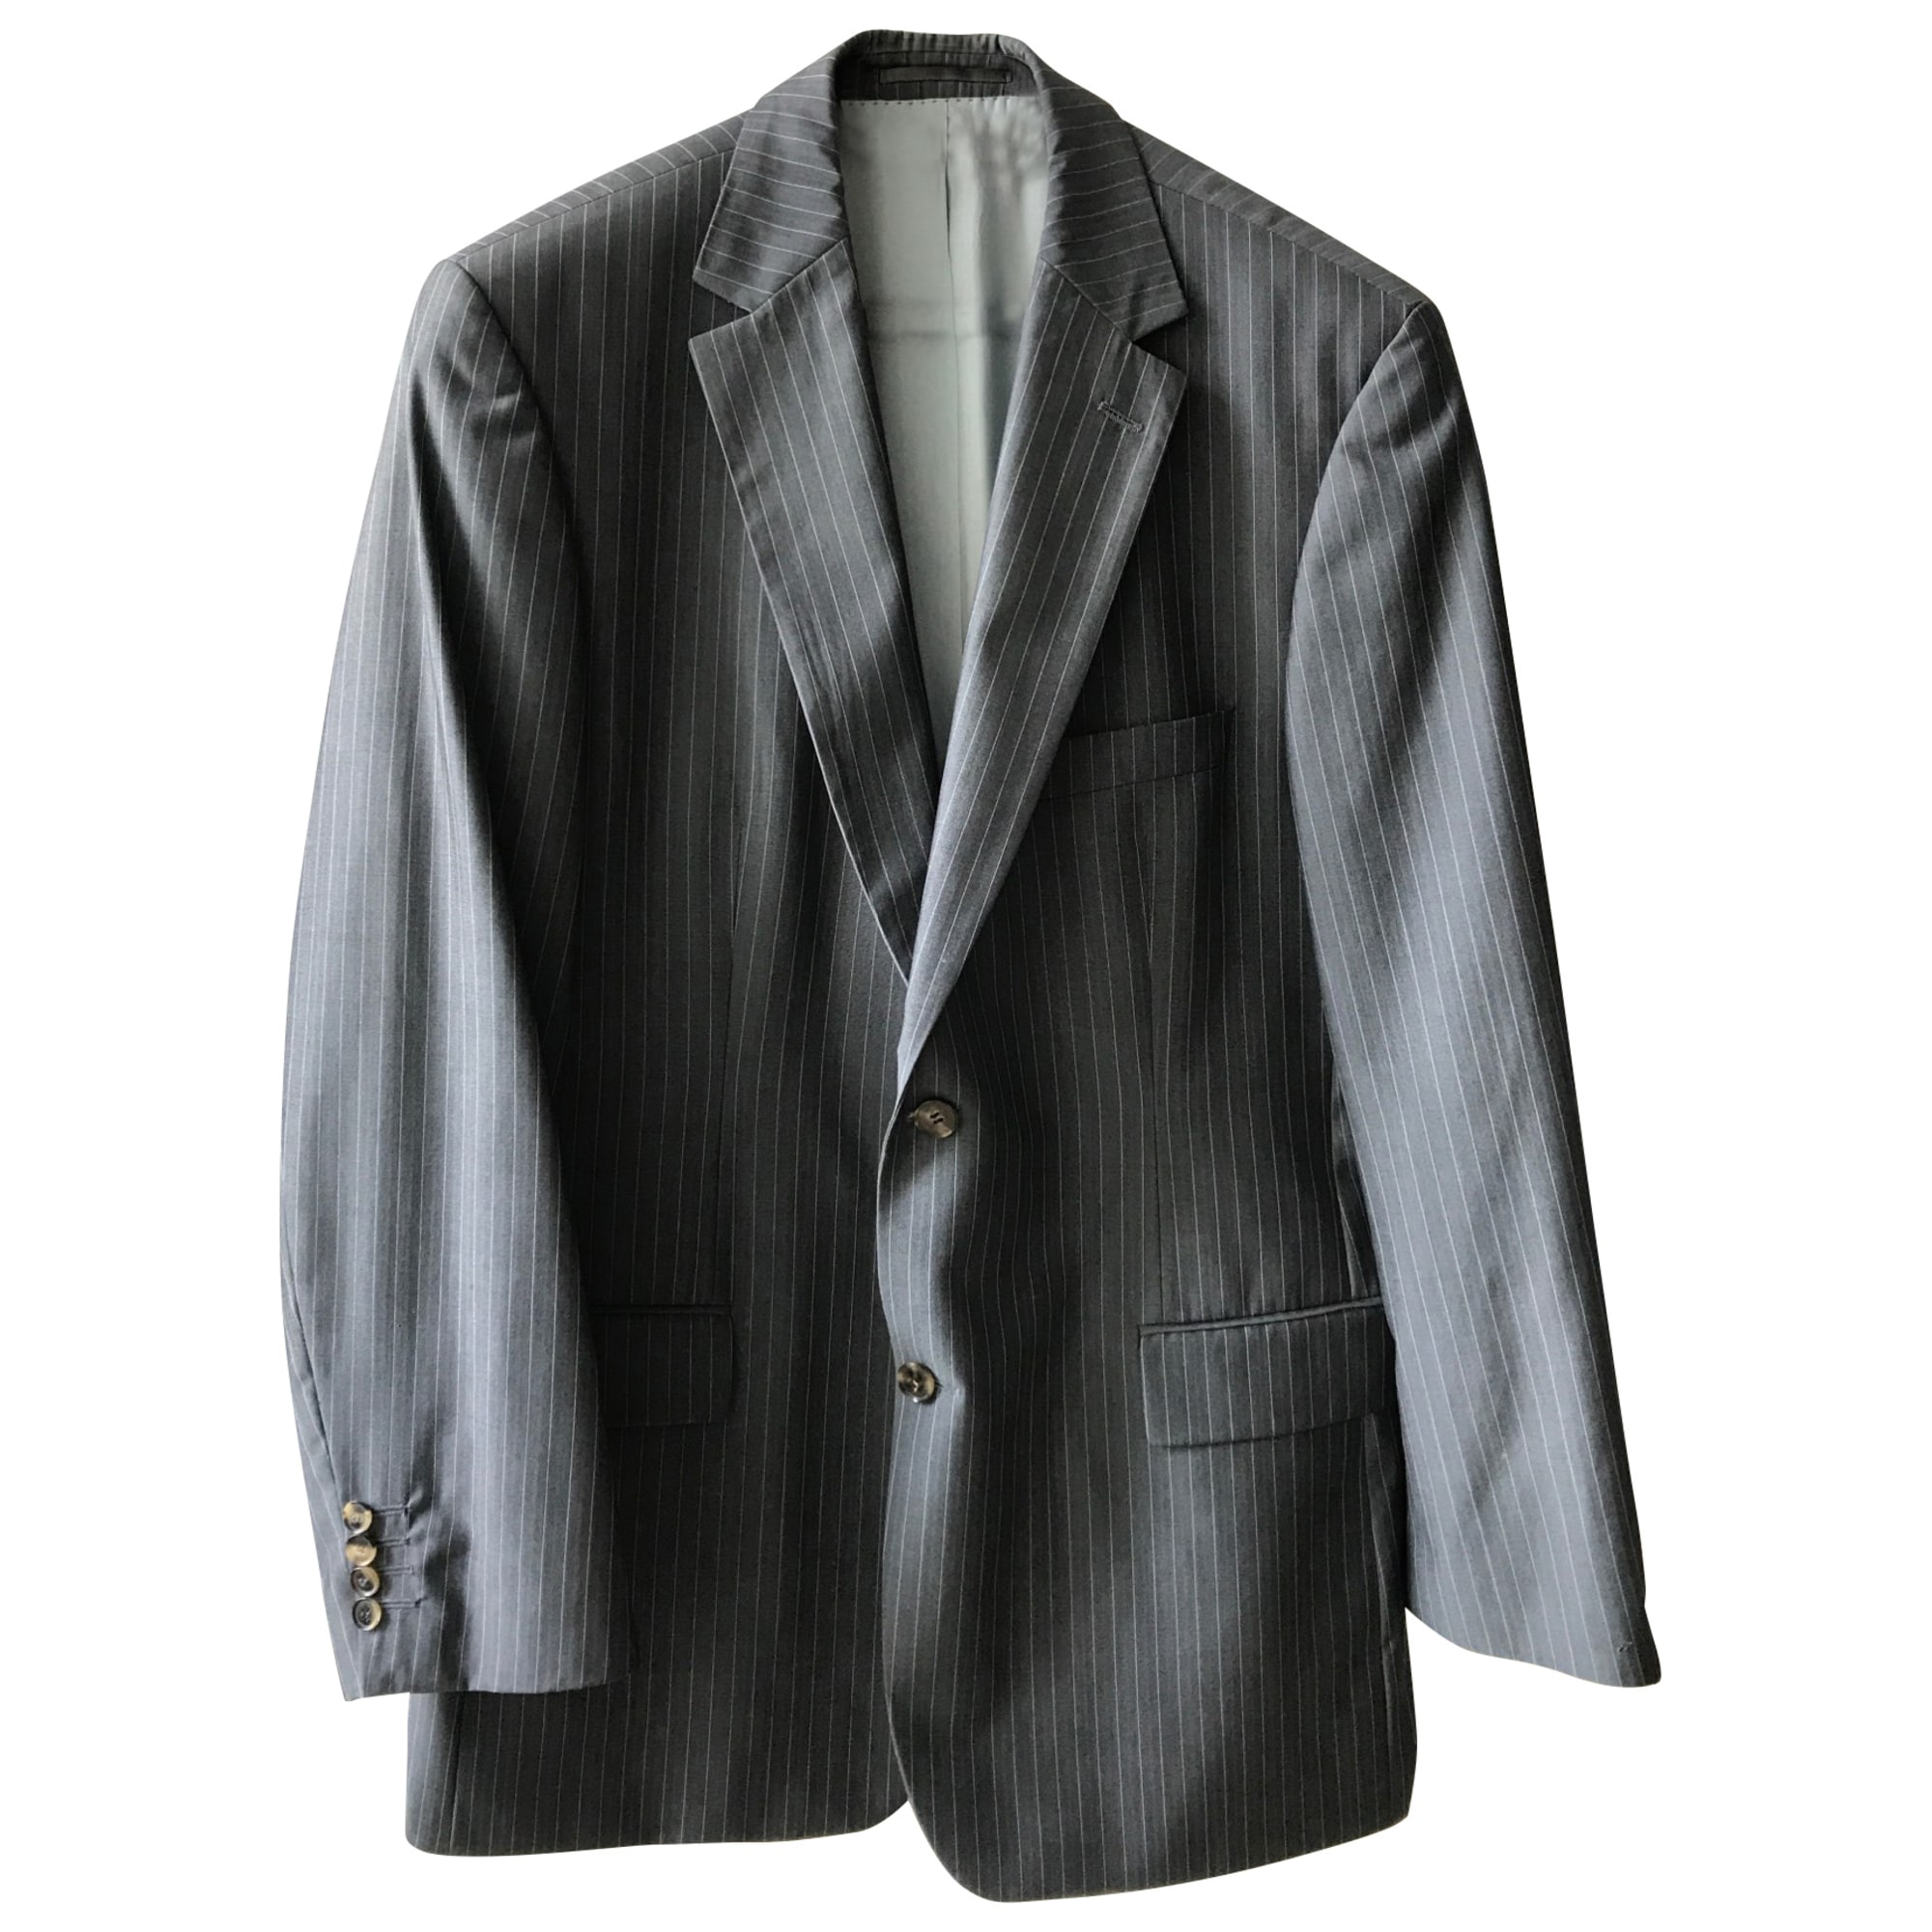 Costume complet HUGO BOSS Gris, anthracite